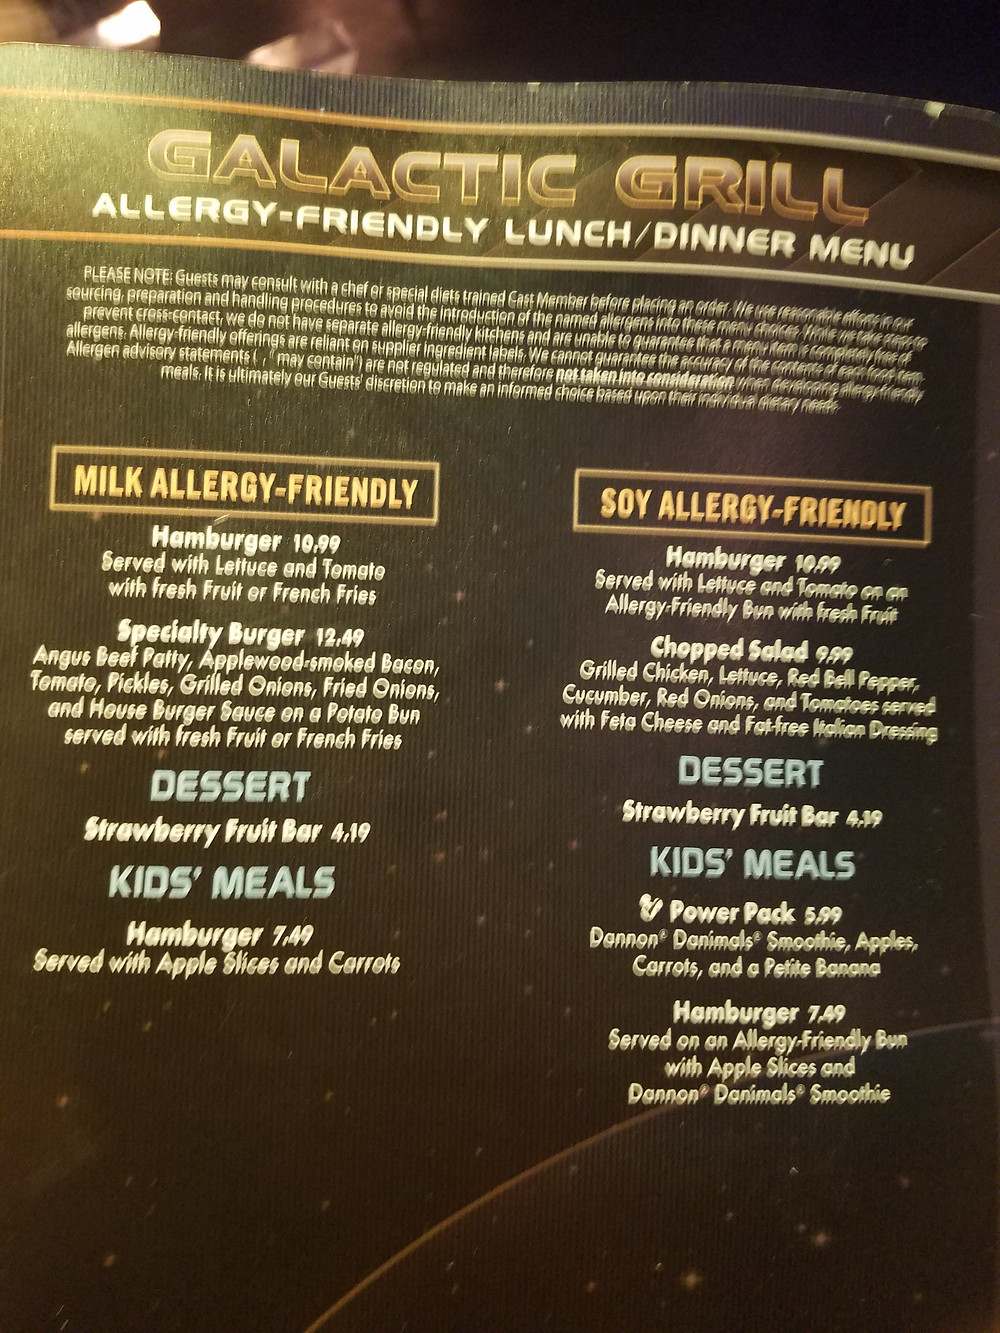 Galactic Grill Allergy-friendly menu page 1